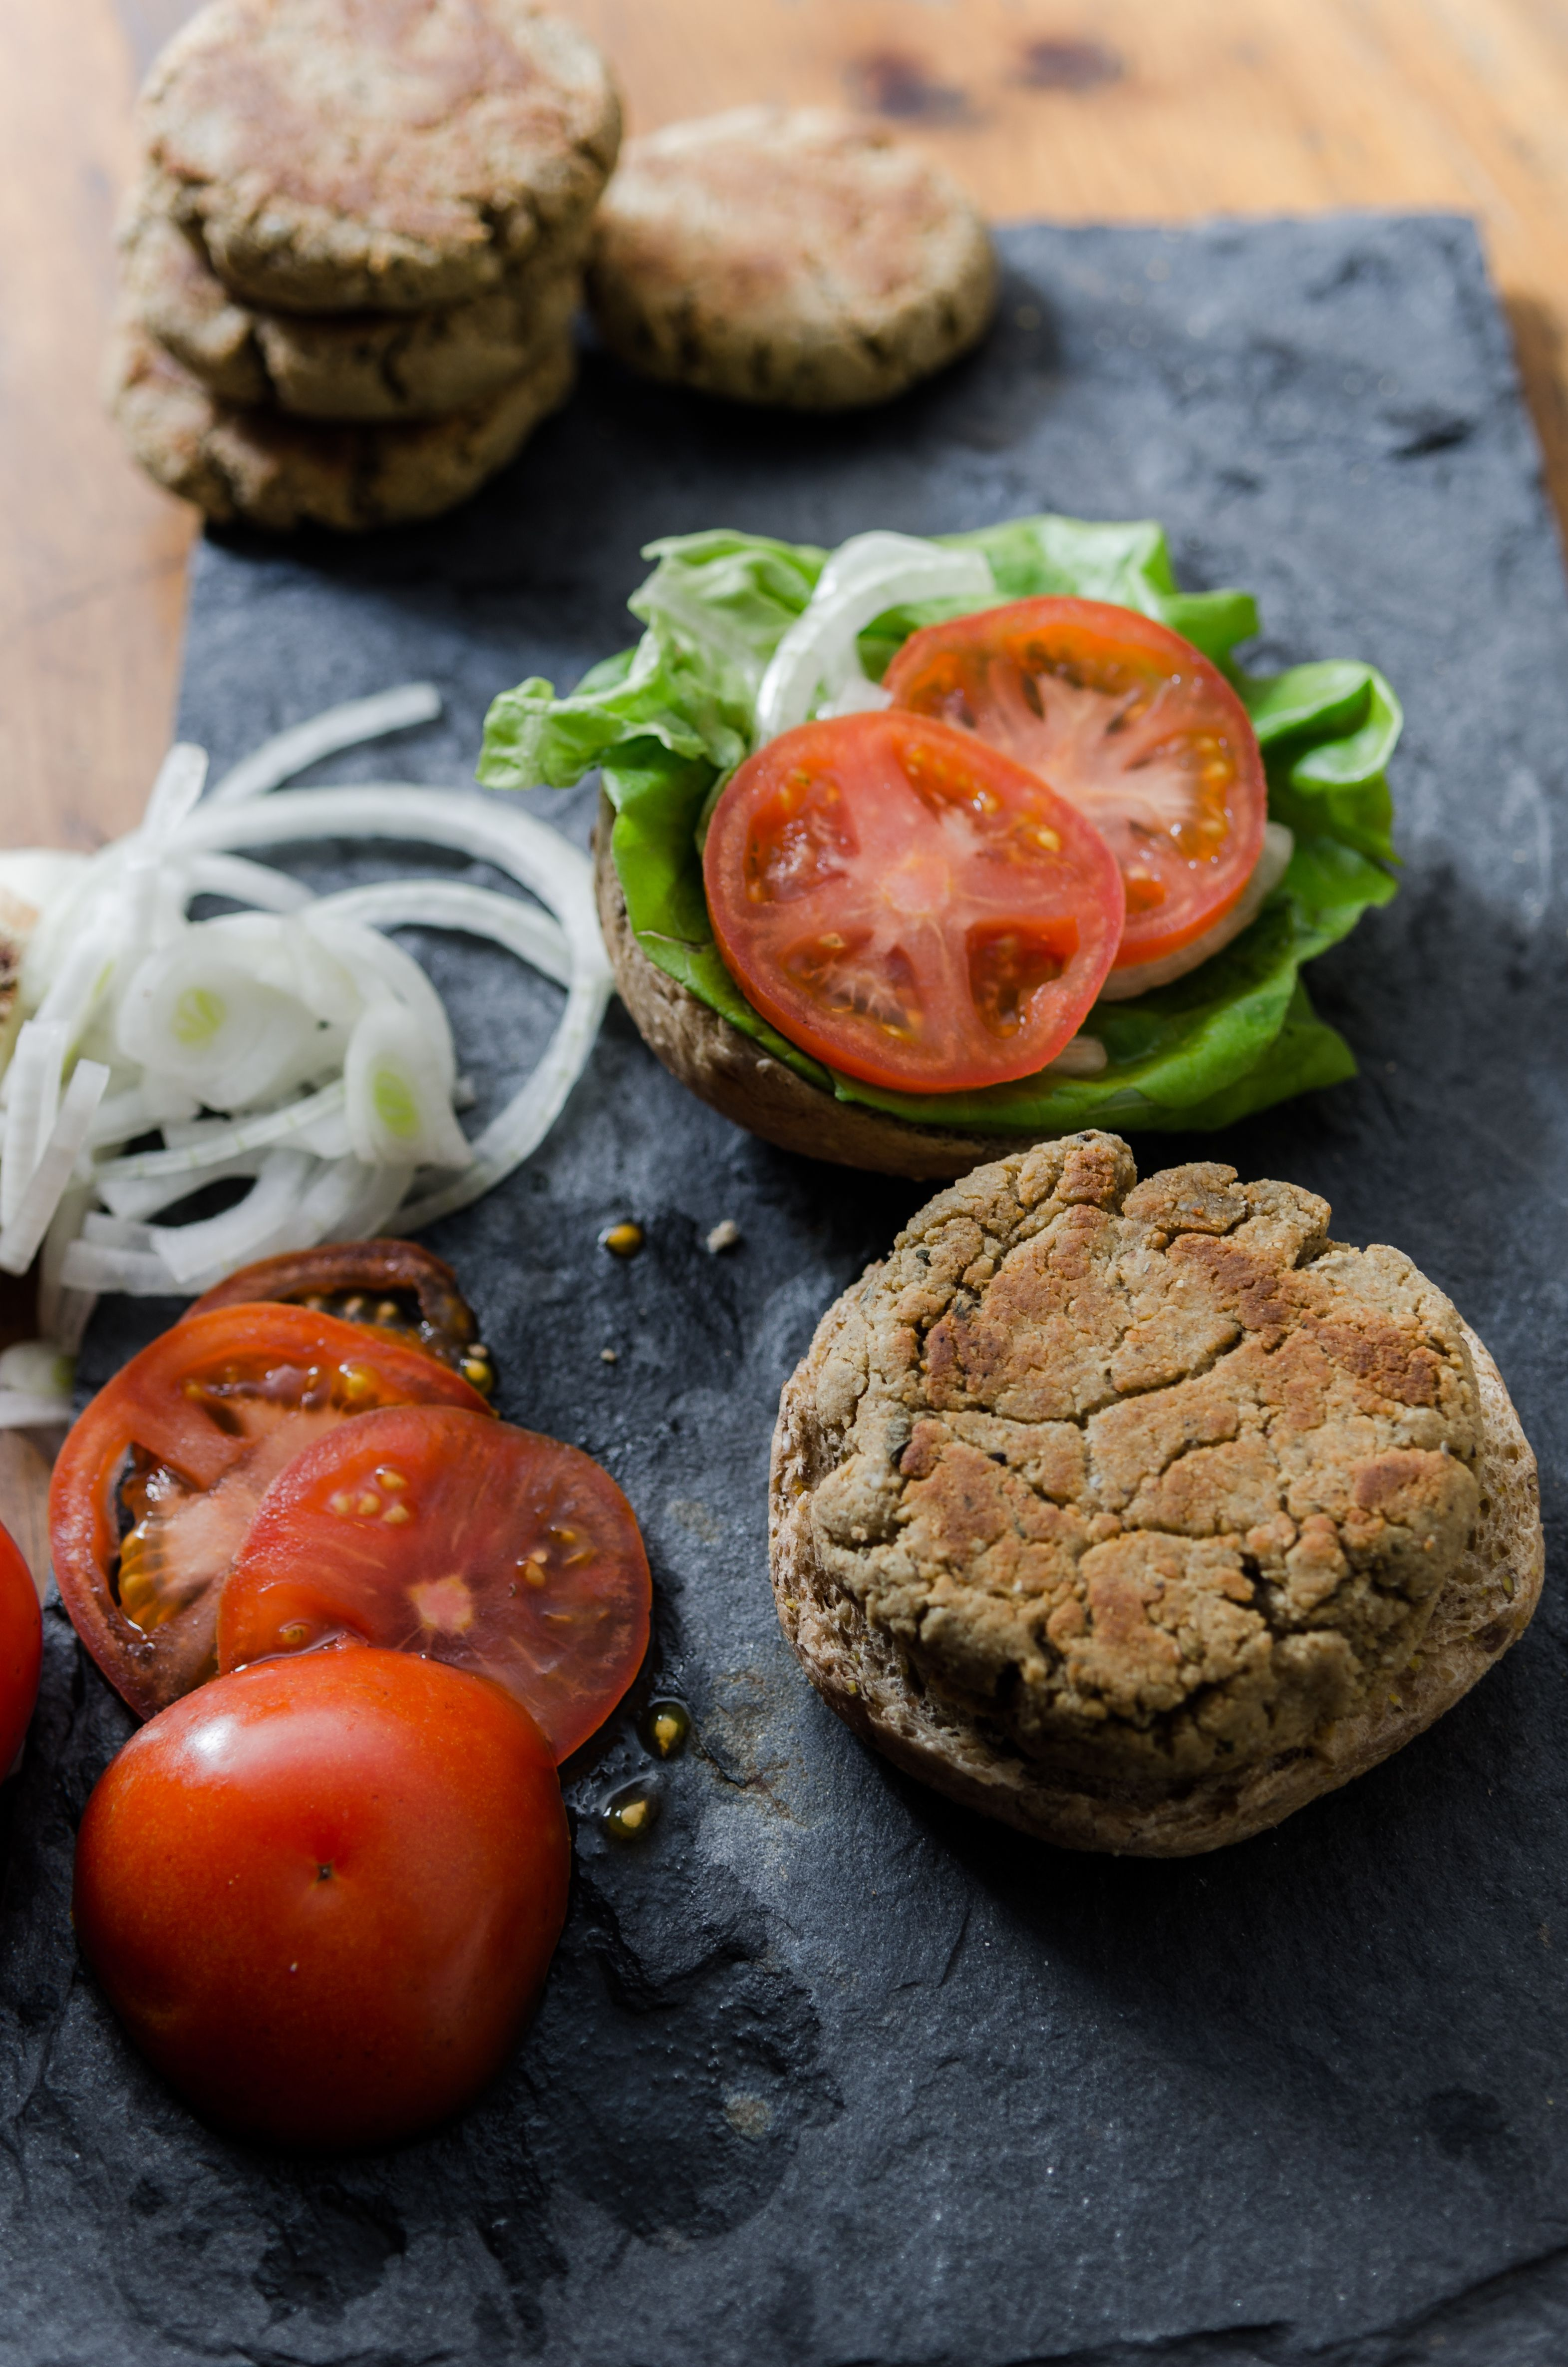 Hemp Veggie Burgers- tofu and hemp seeds make the base for a protein-packed burger that will knock the socks off boxed versions. // Bob's Red Mill // vegan, gluten free adaptable.